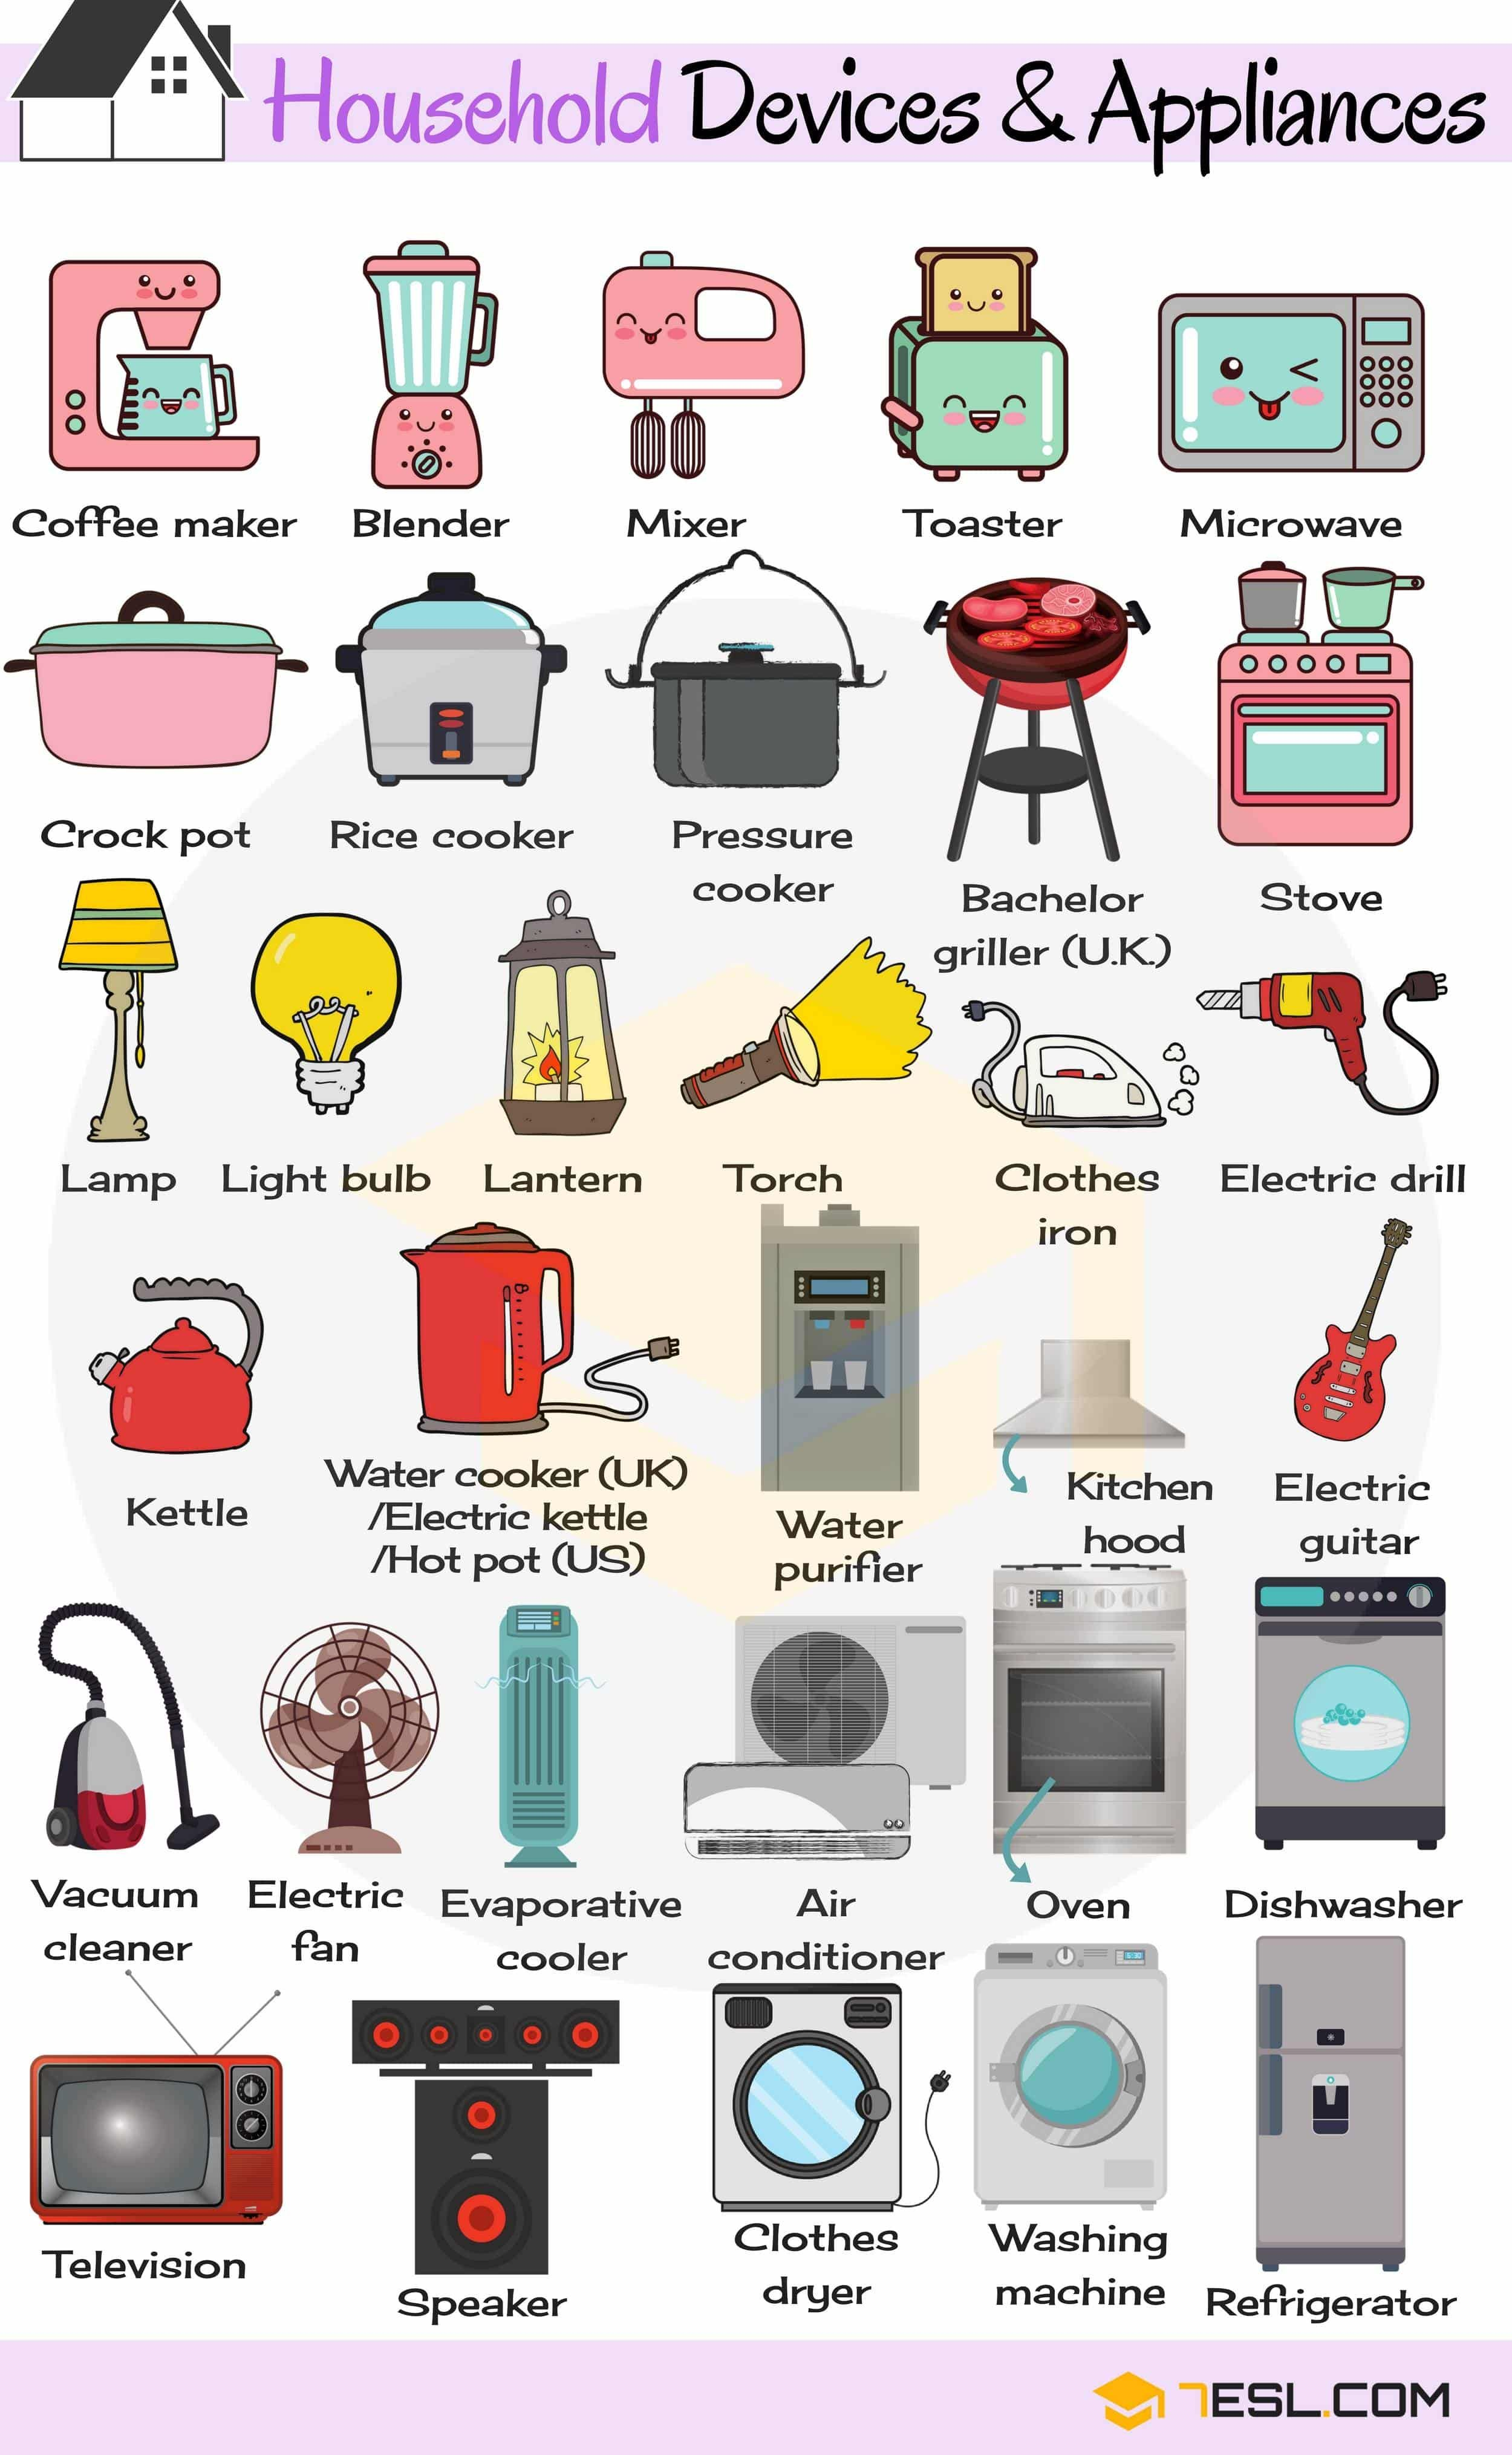 Household Appliances Useful Home Appliances List With Pictures is part of English vocabulary, Learn english vocabulary, English language learning, English language teaching, Learn english, English vocabulary words -  home appliances list with examples and pictures  In this modern day and age, there are a whole host of household appliances and the